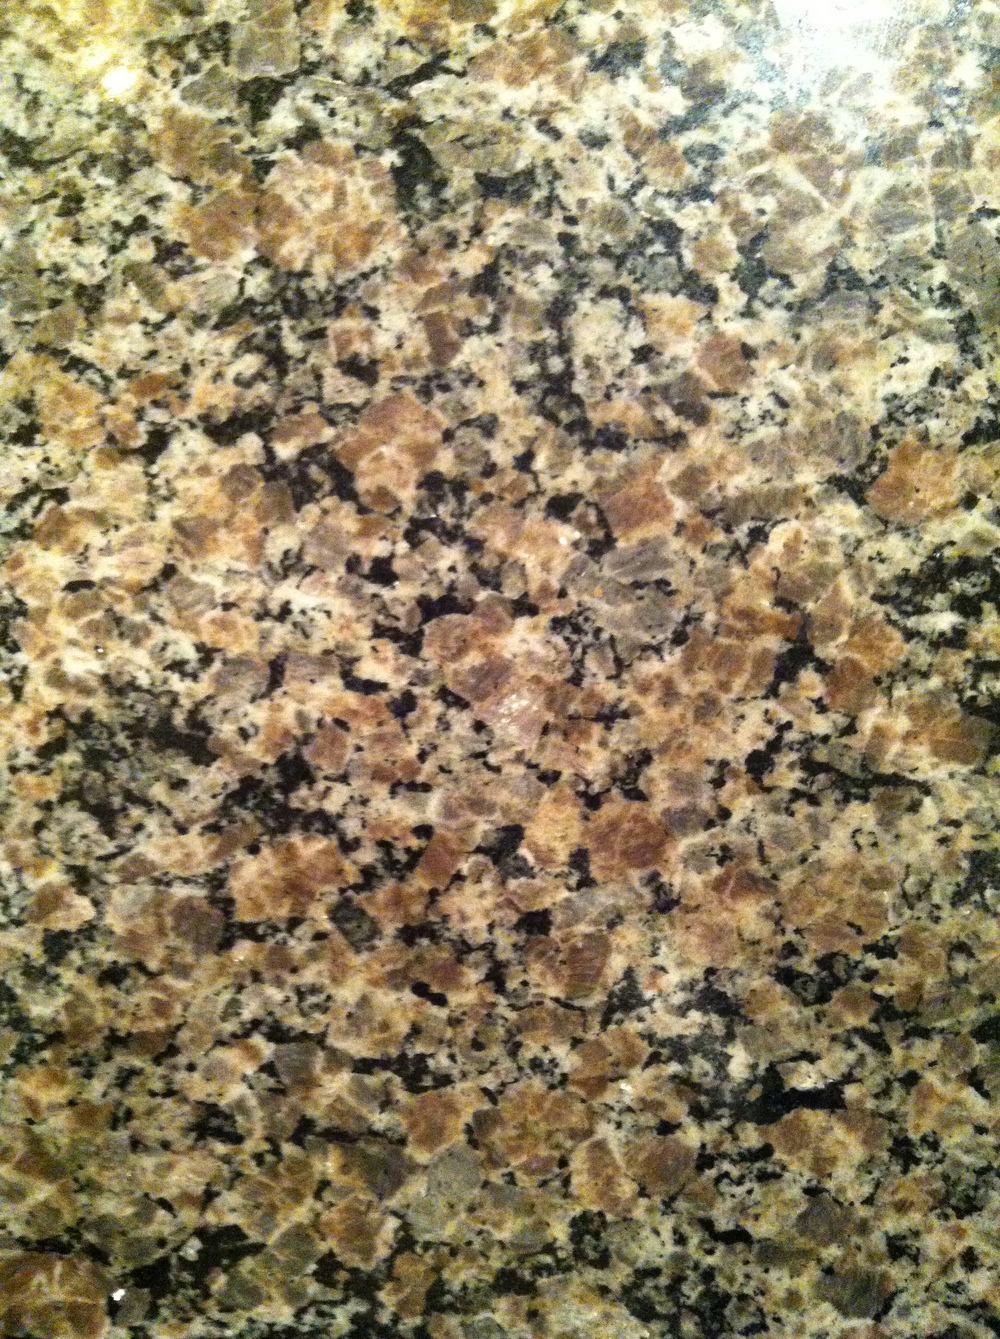 Black and Gray Granite Countertop.JPG